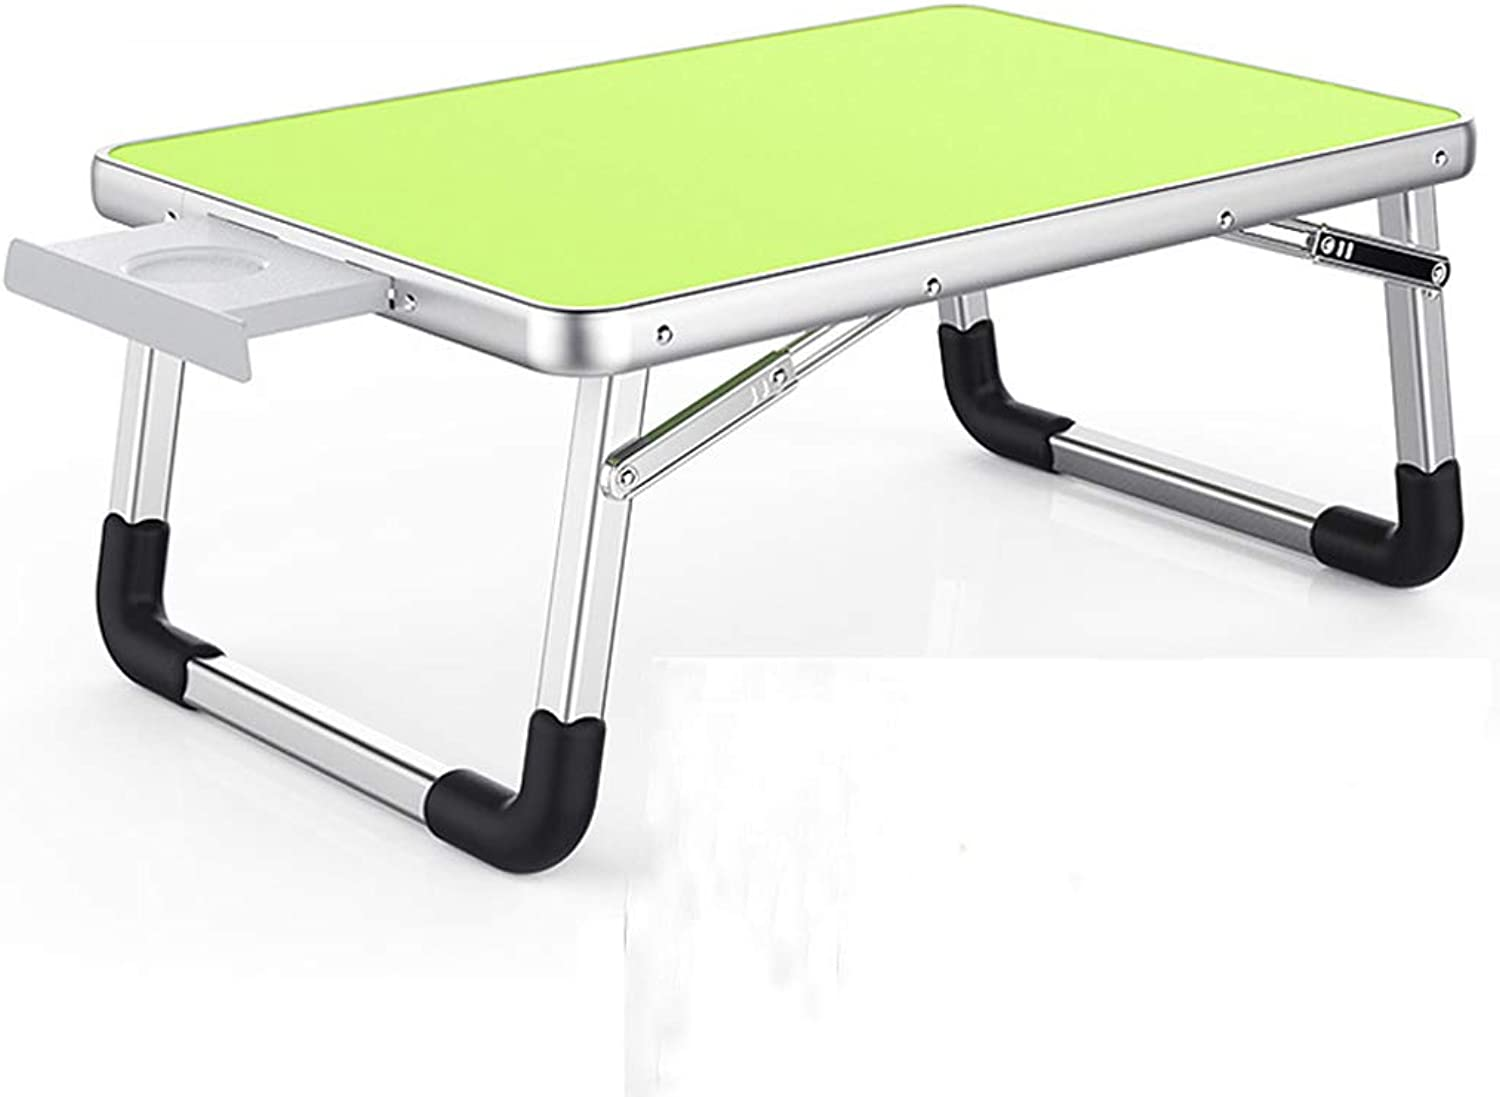 Djyyh Laptop Desk, Aluminum Desk, Folding Table, Small Table Rounded Arc, with Non-Slip Cup Slot